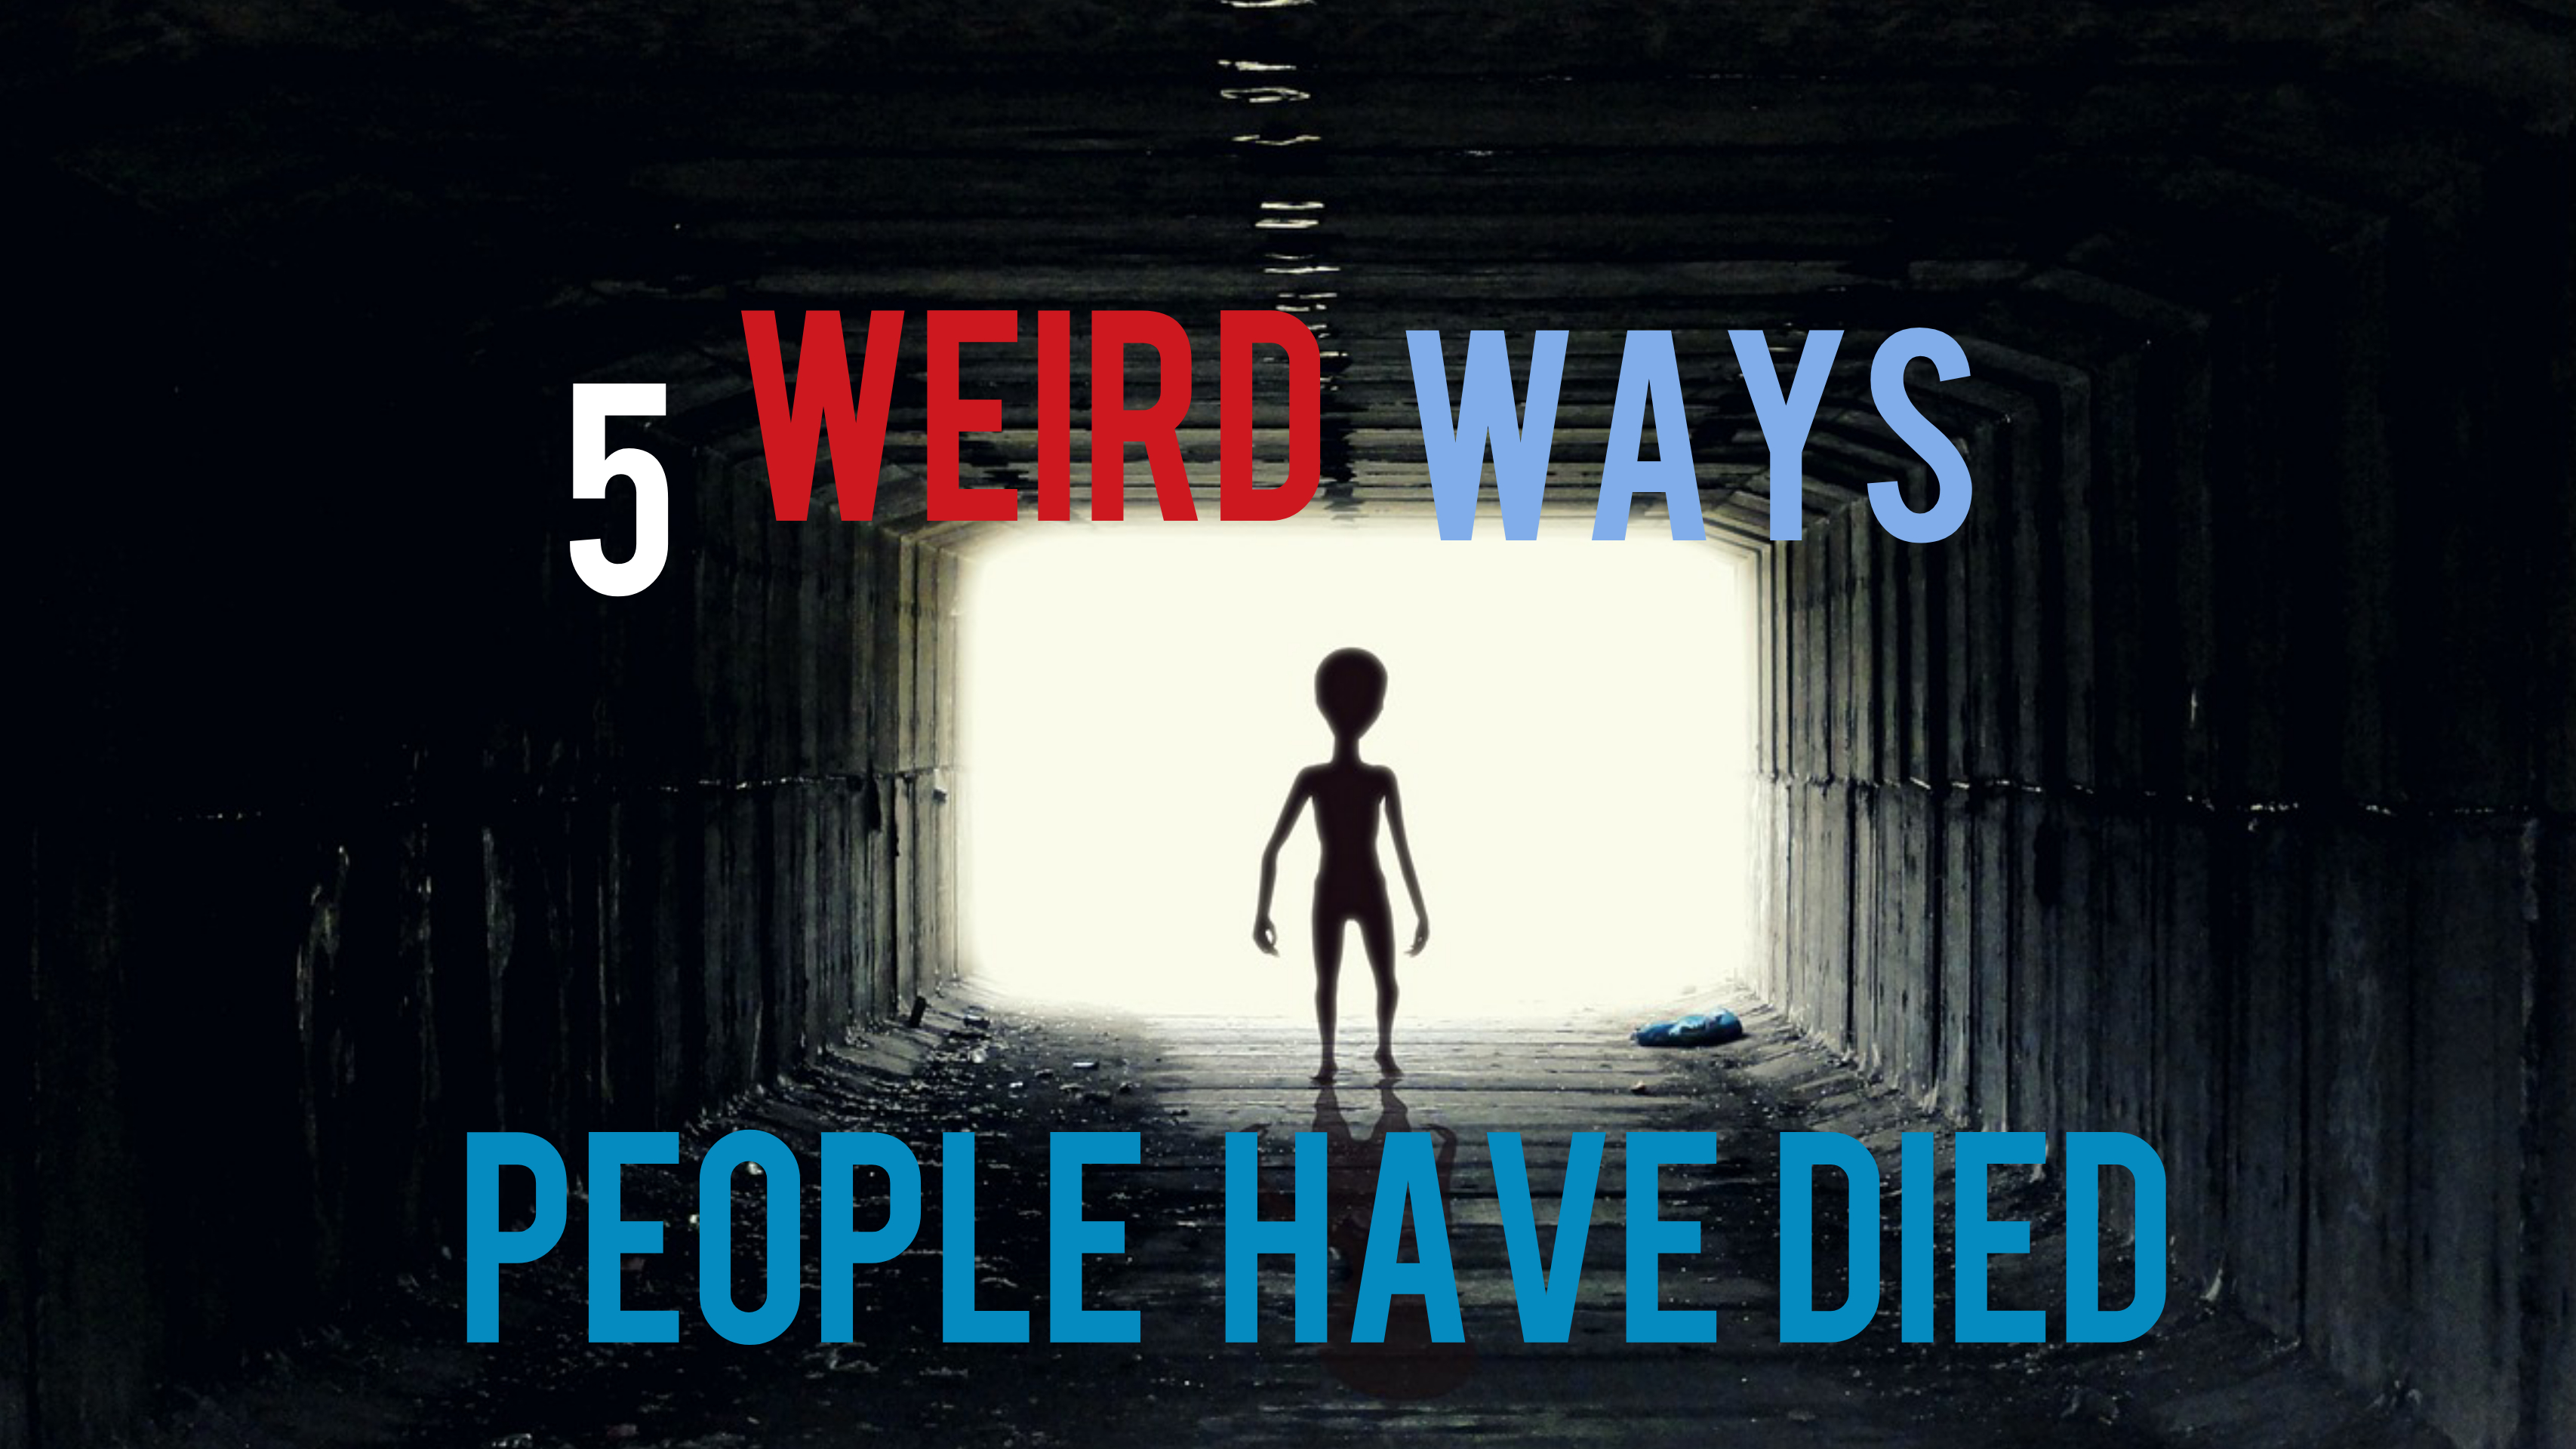 5 Weird Ways People Have Died